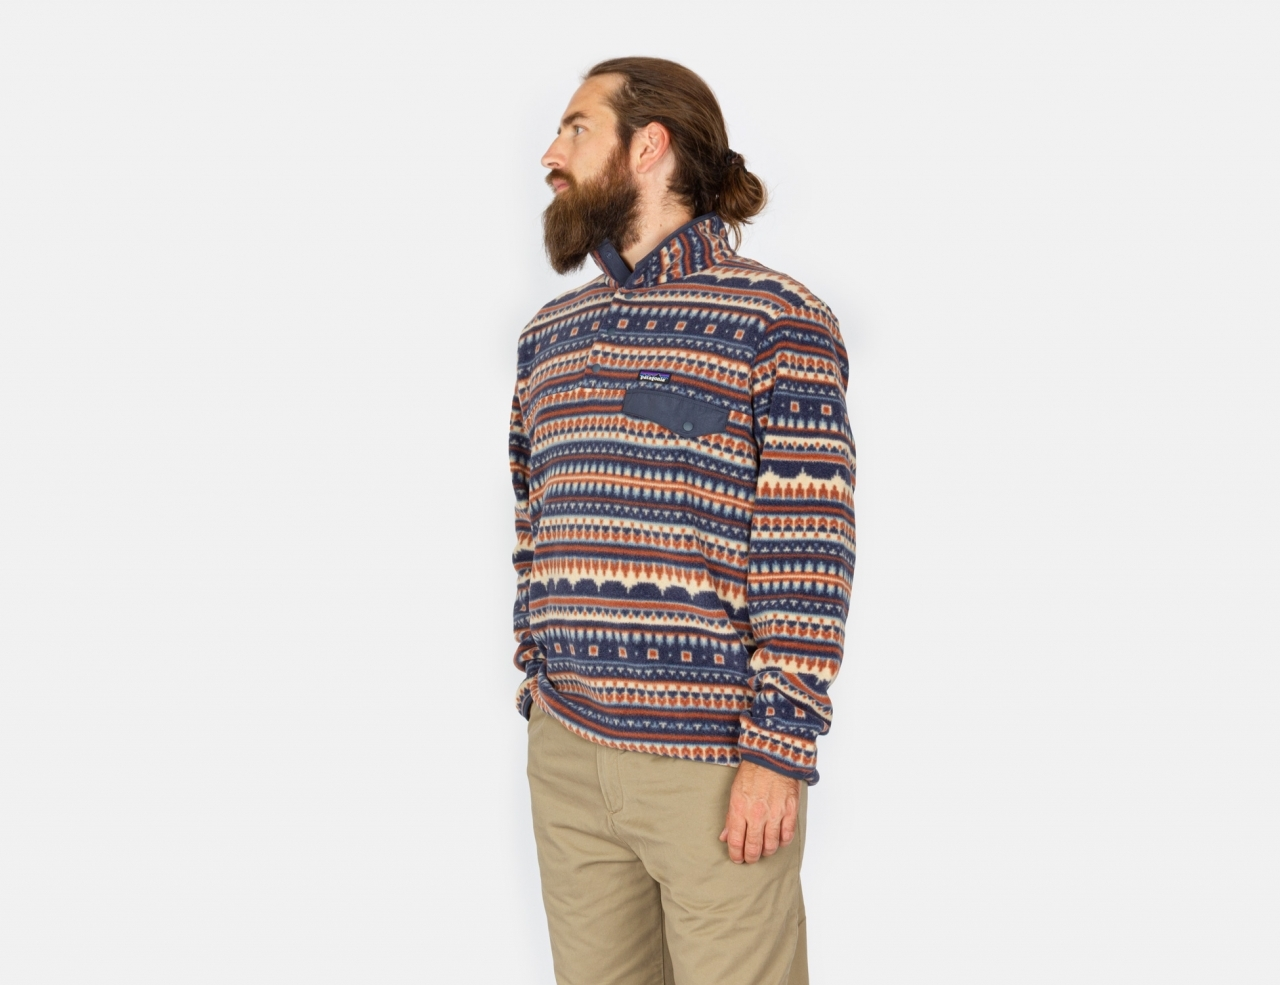 Patagonia Lightweight Synch Snap-T Fleece Pullover - Cottage Isle: El Cap Khaki